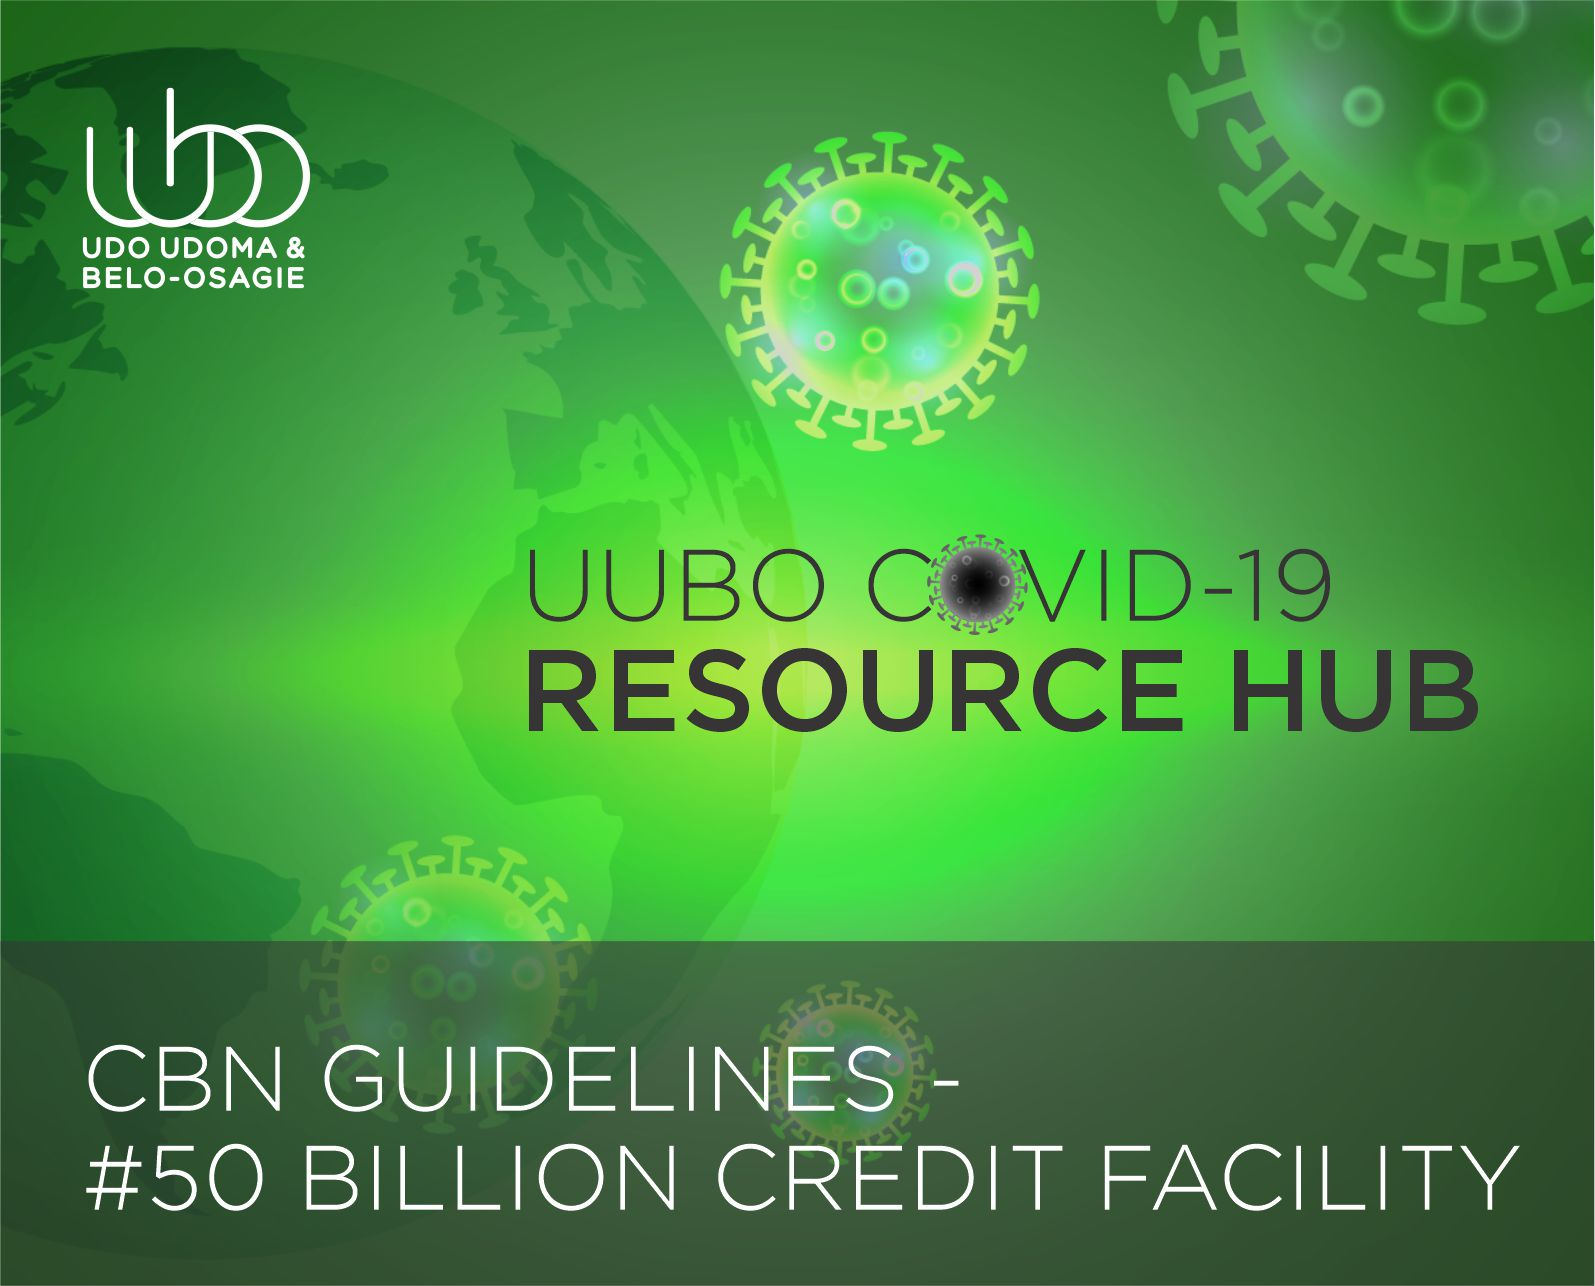 CBN GUIDELINES 50 BILLION CREDIT FACILITY